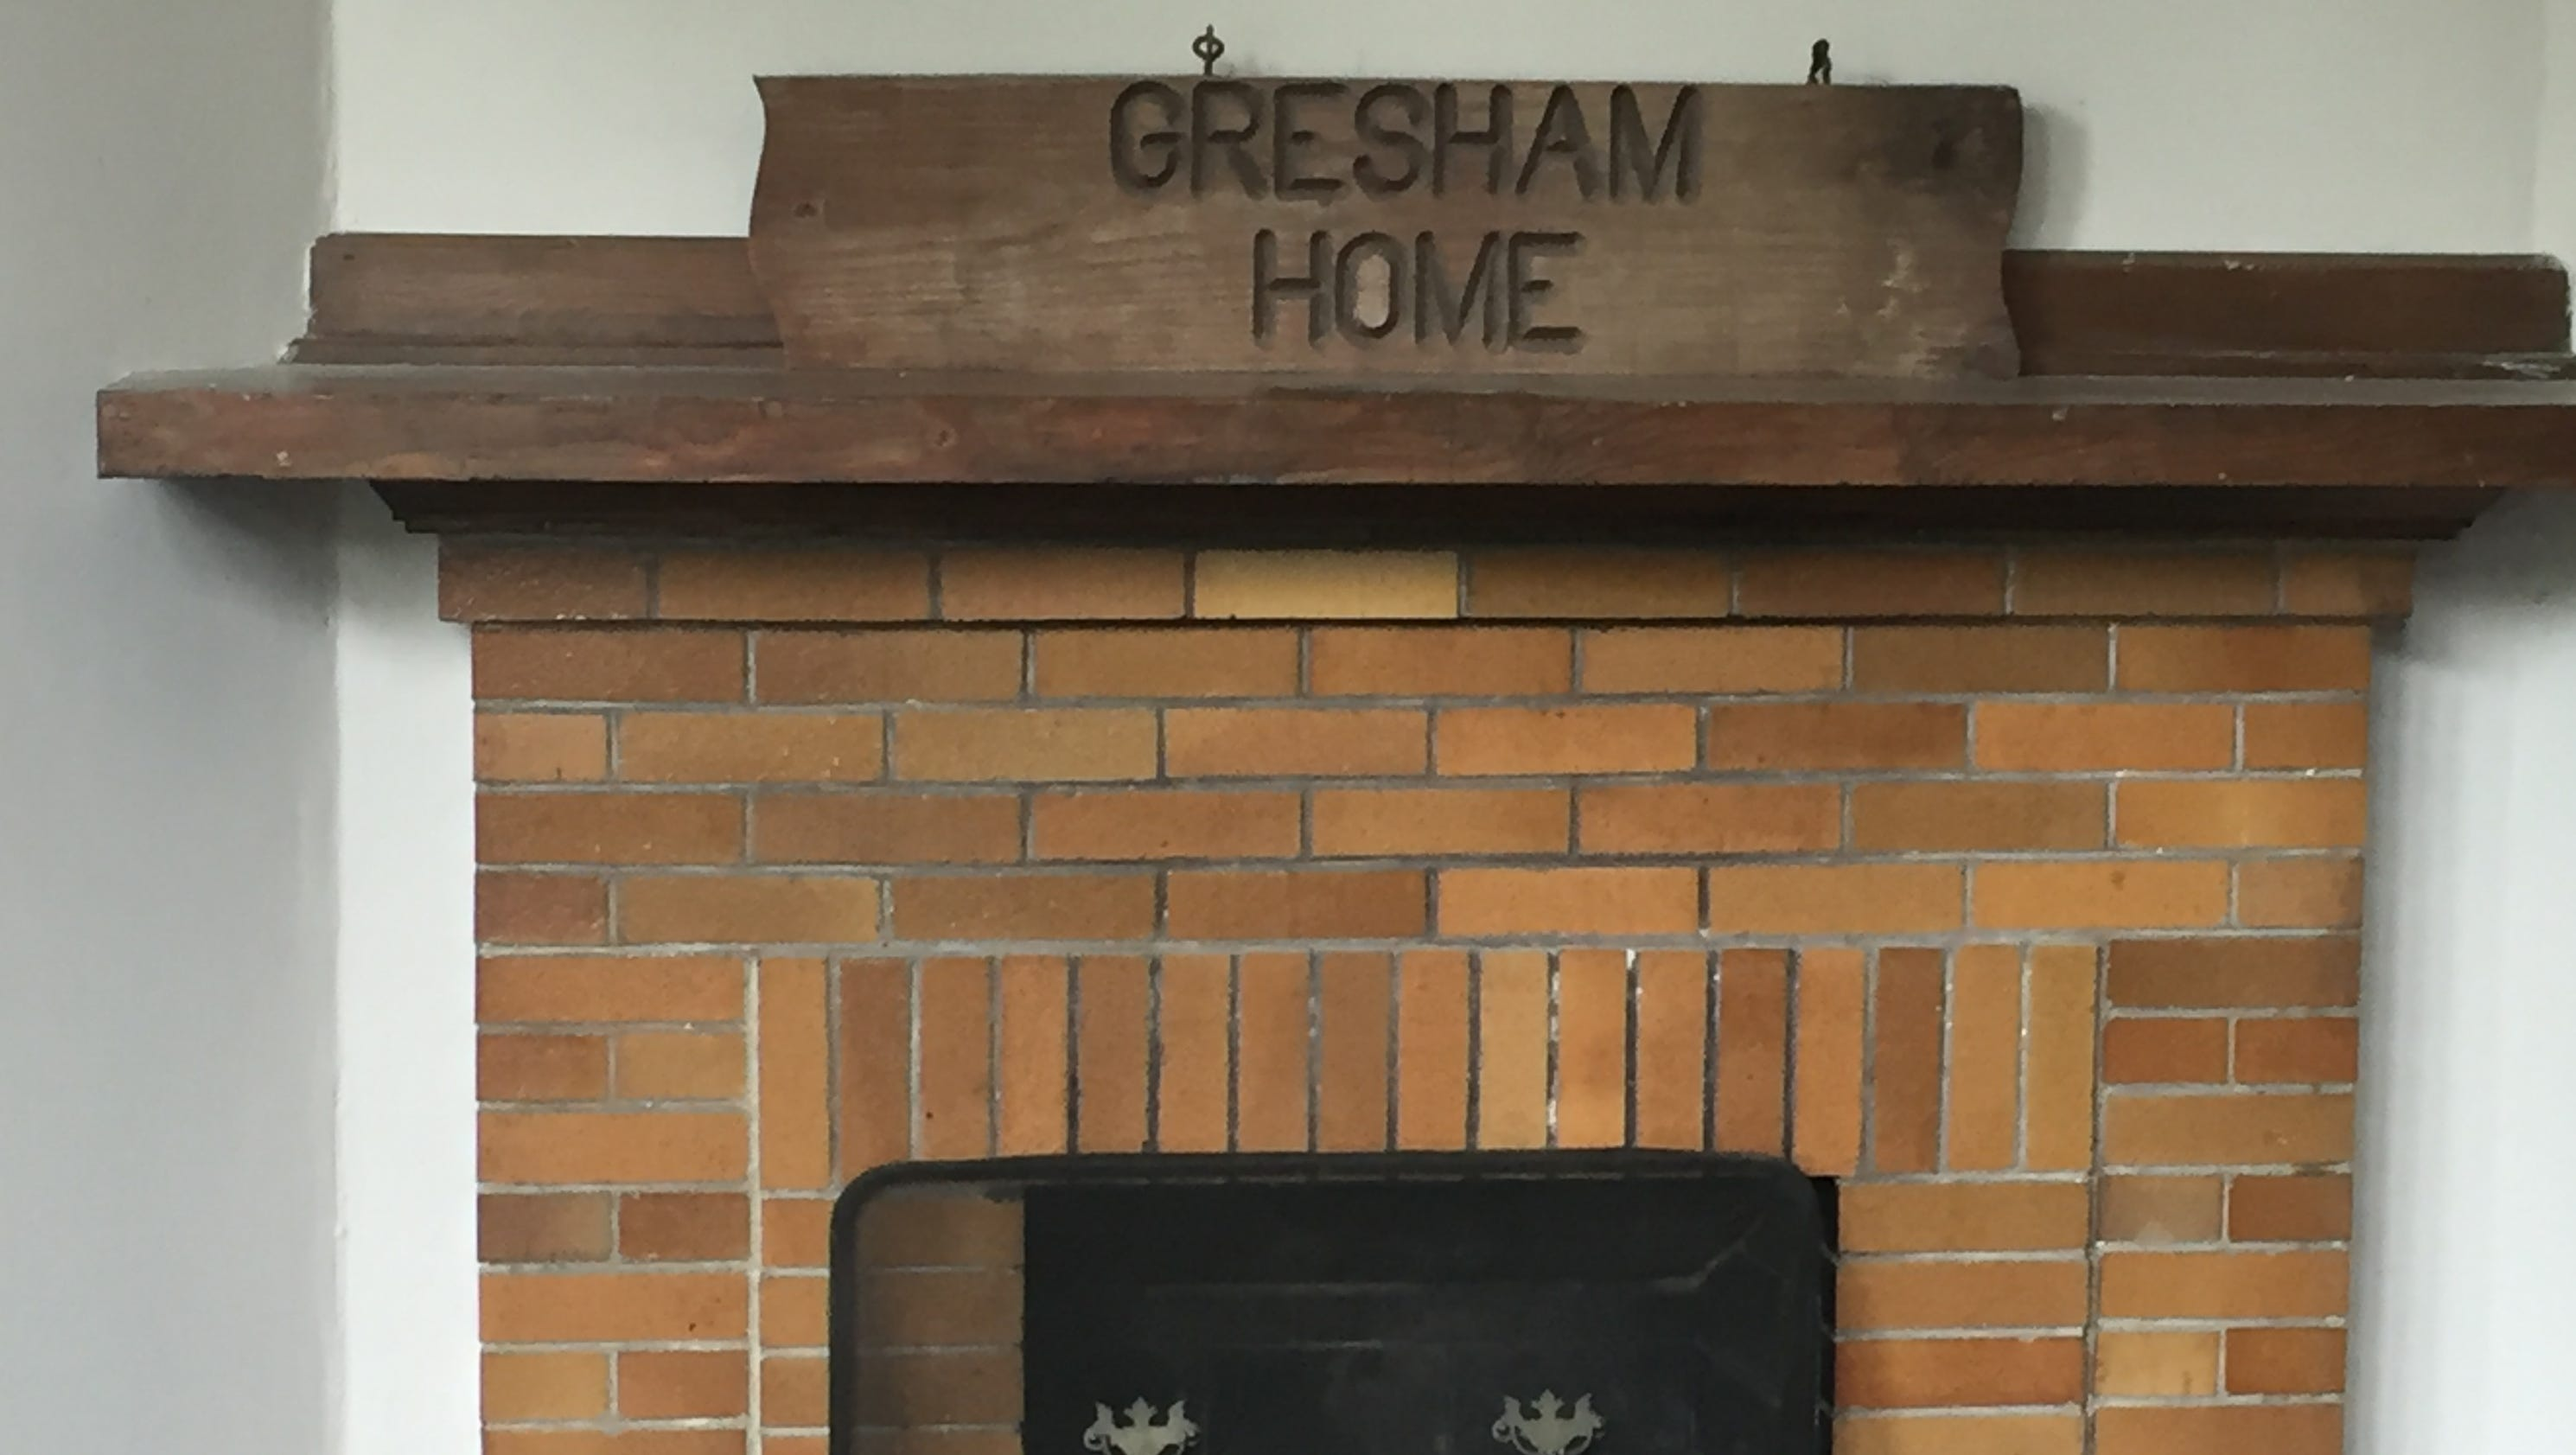 Gresham house to give vets path to permanent housing for Gresham house